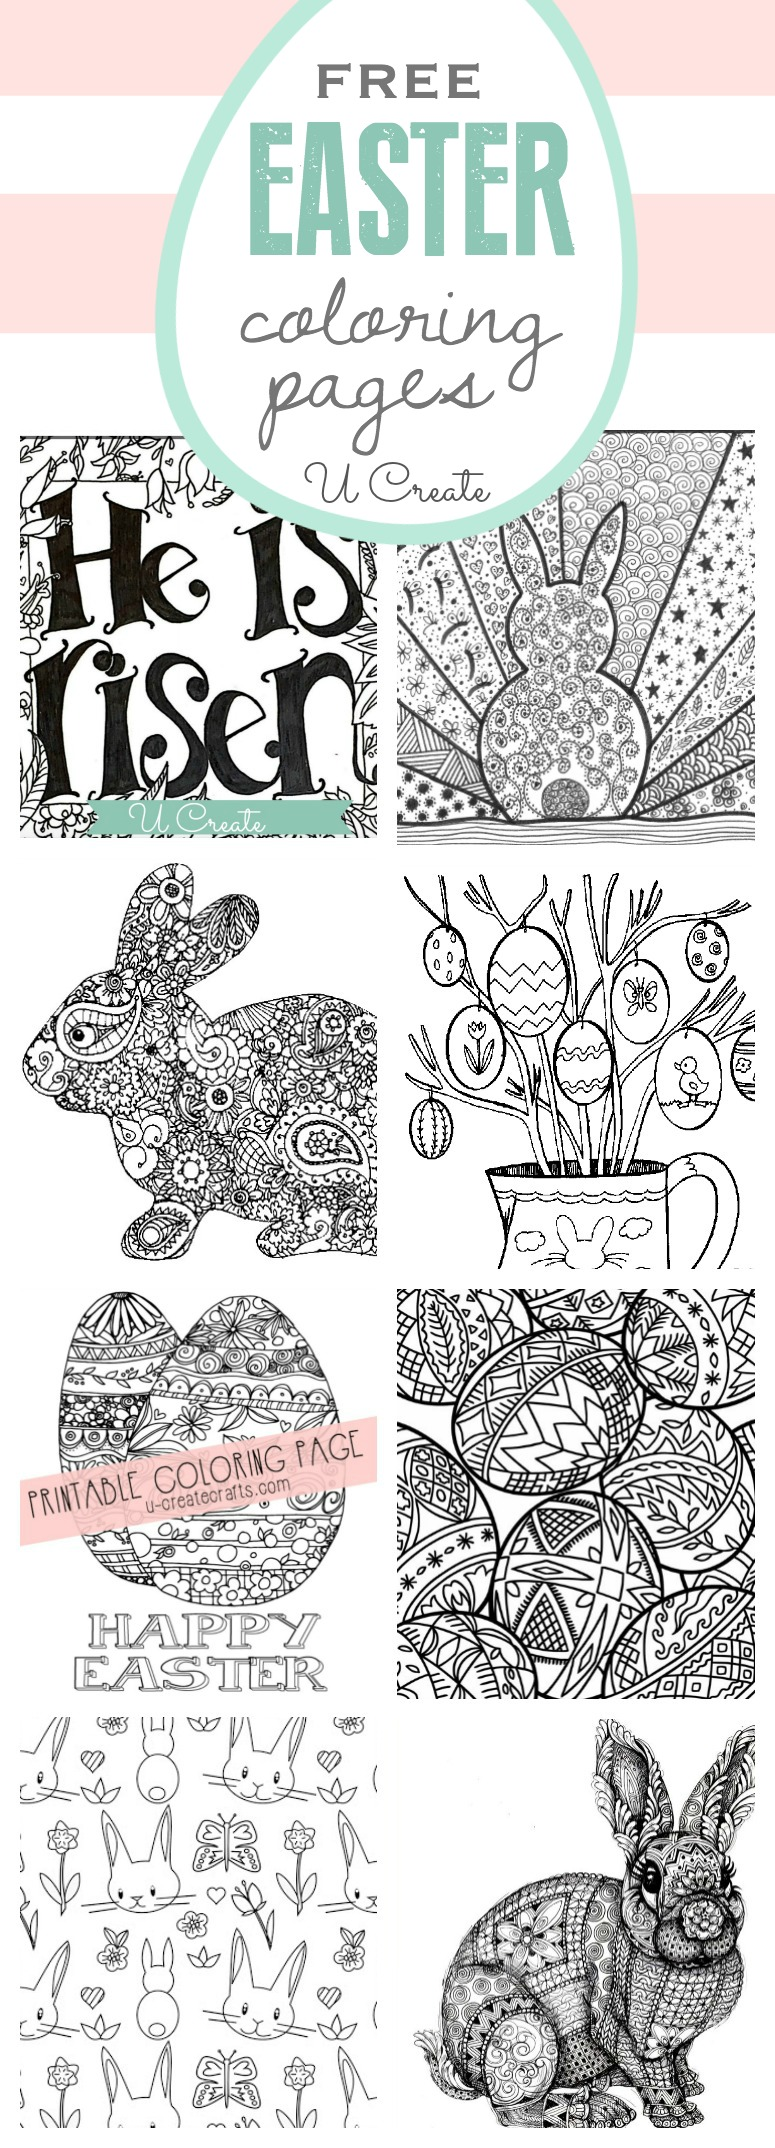 http://www.u-createcrafts.com/wp-content/uploads/2016/03/free-easter-coloring-pages.jpg